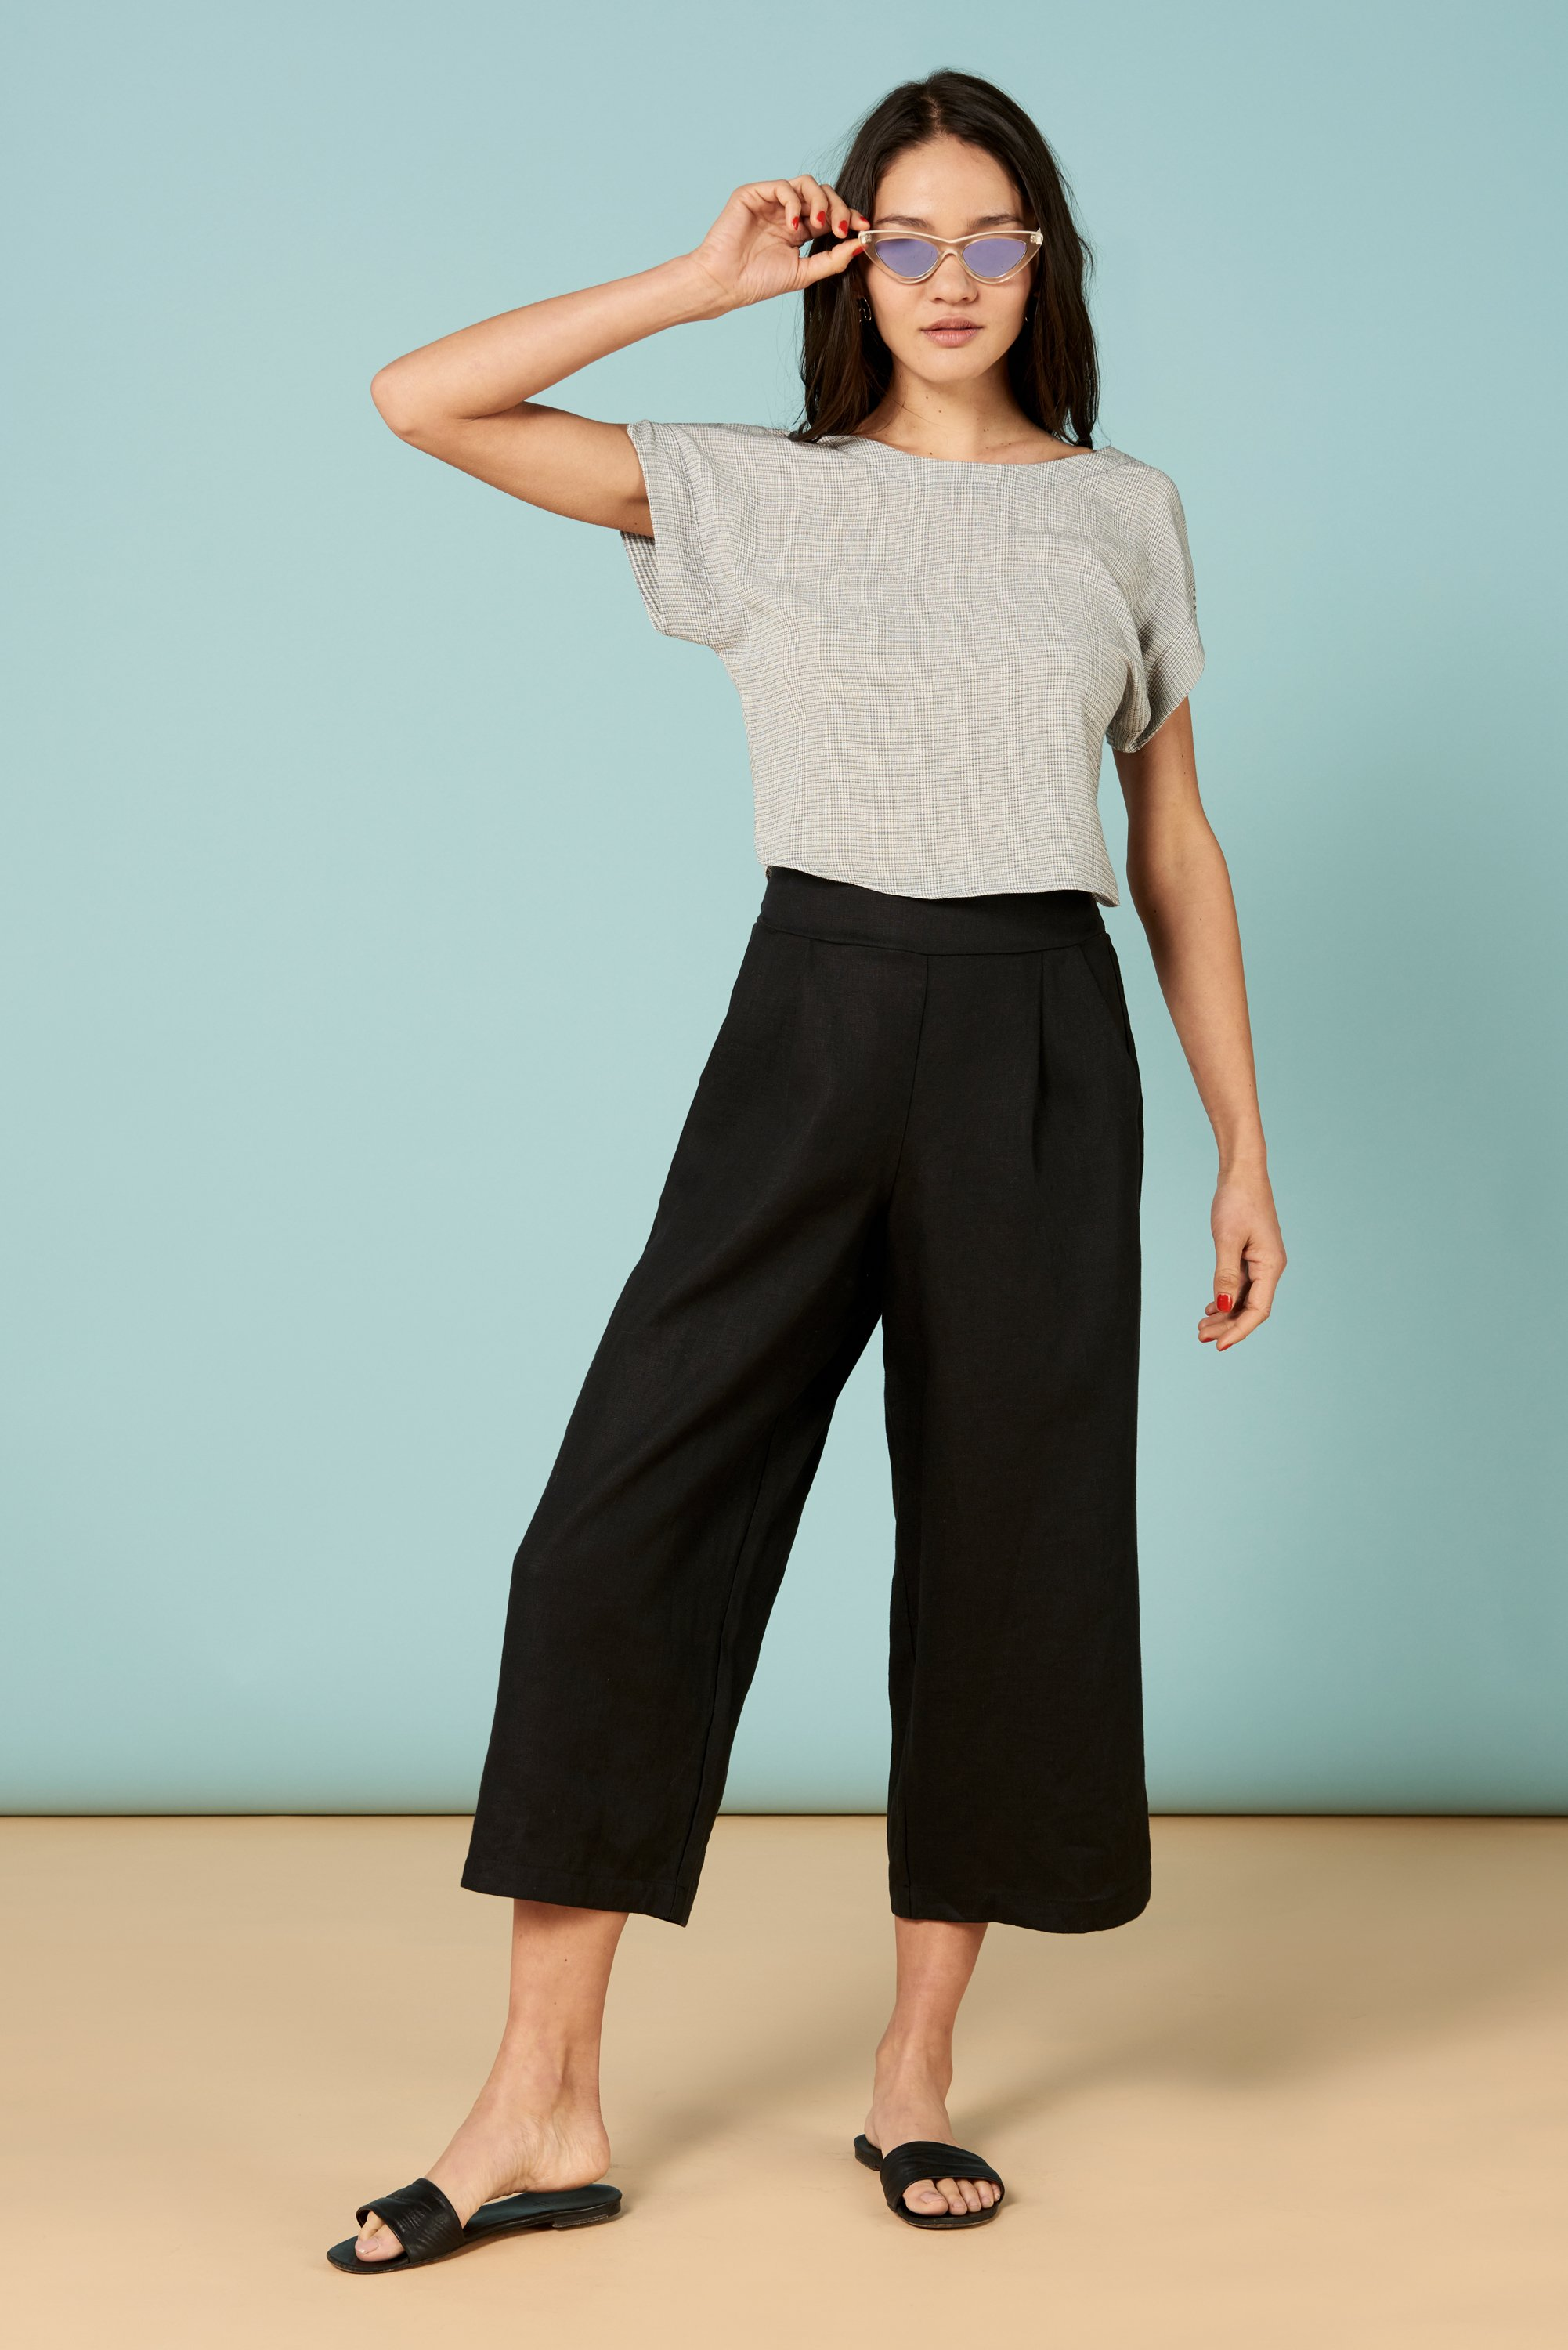 Valentina Pant in Black Linen from Whimsy and Row